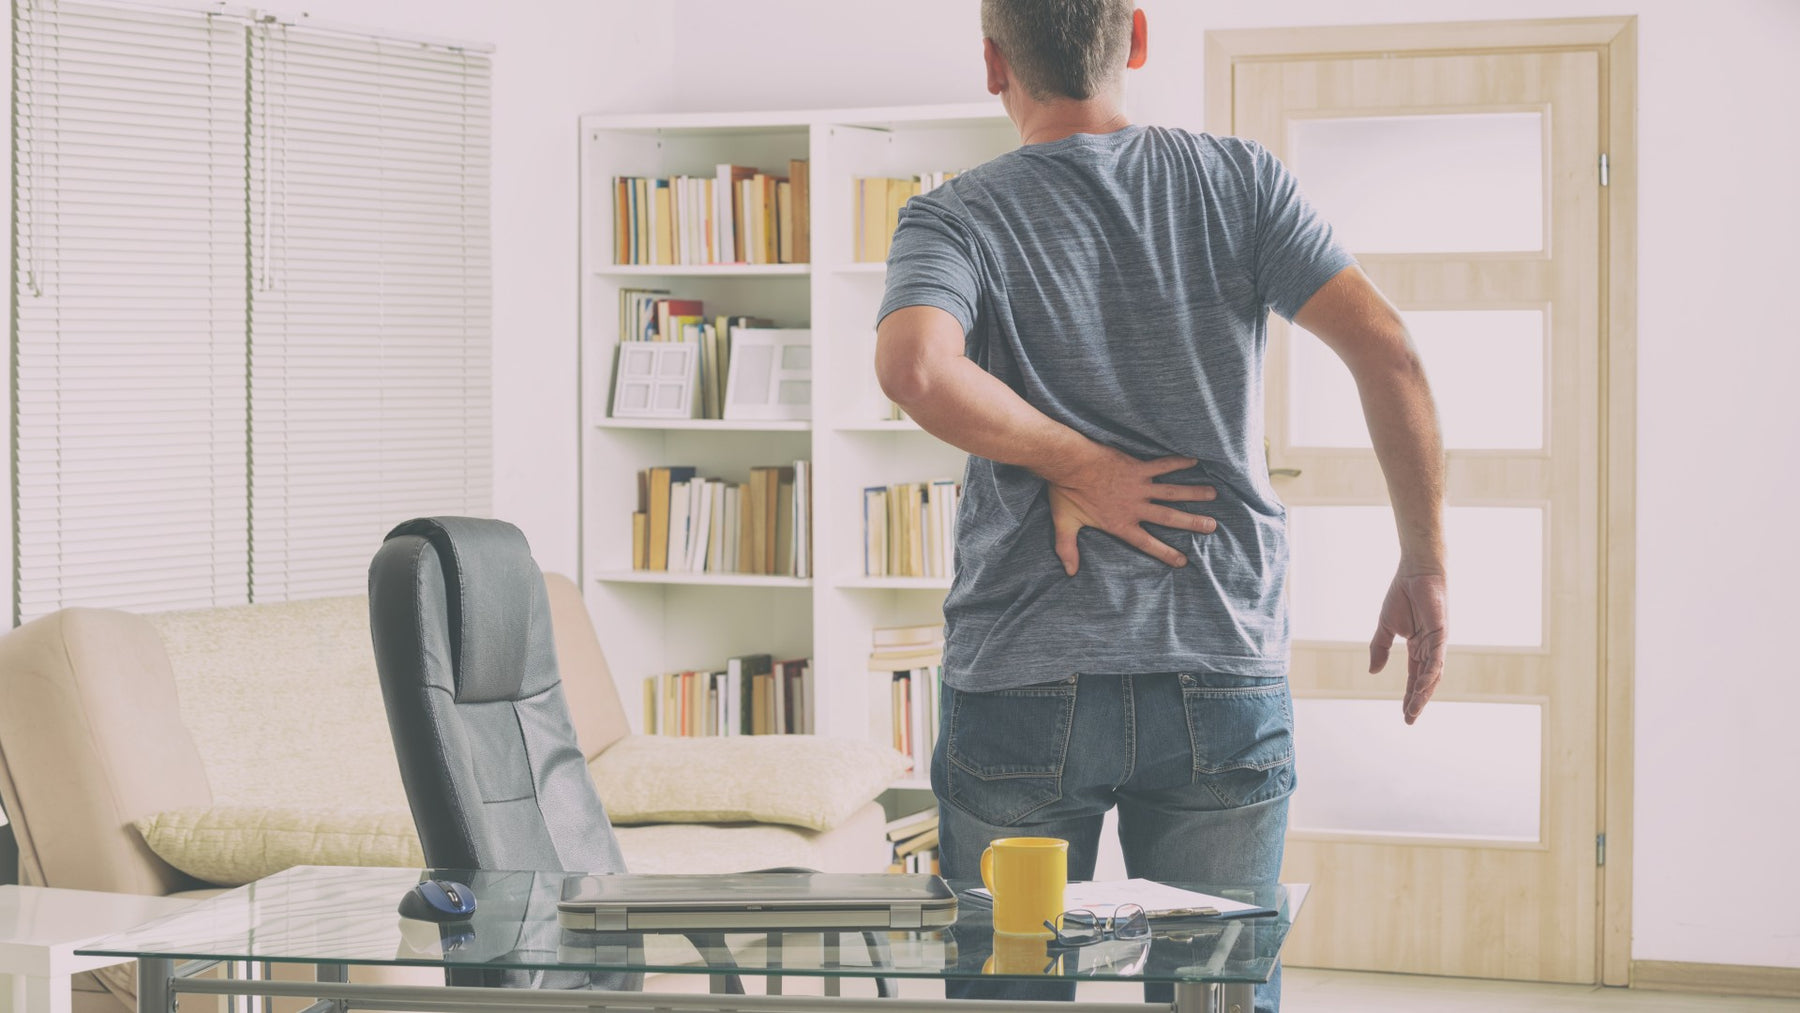 Standing Desk - Worse for Health Than Sitting?